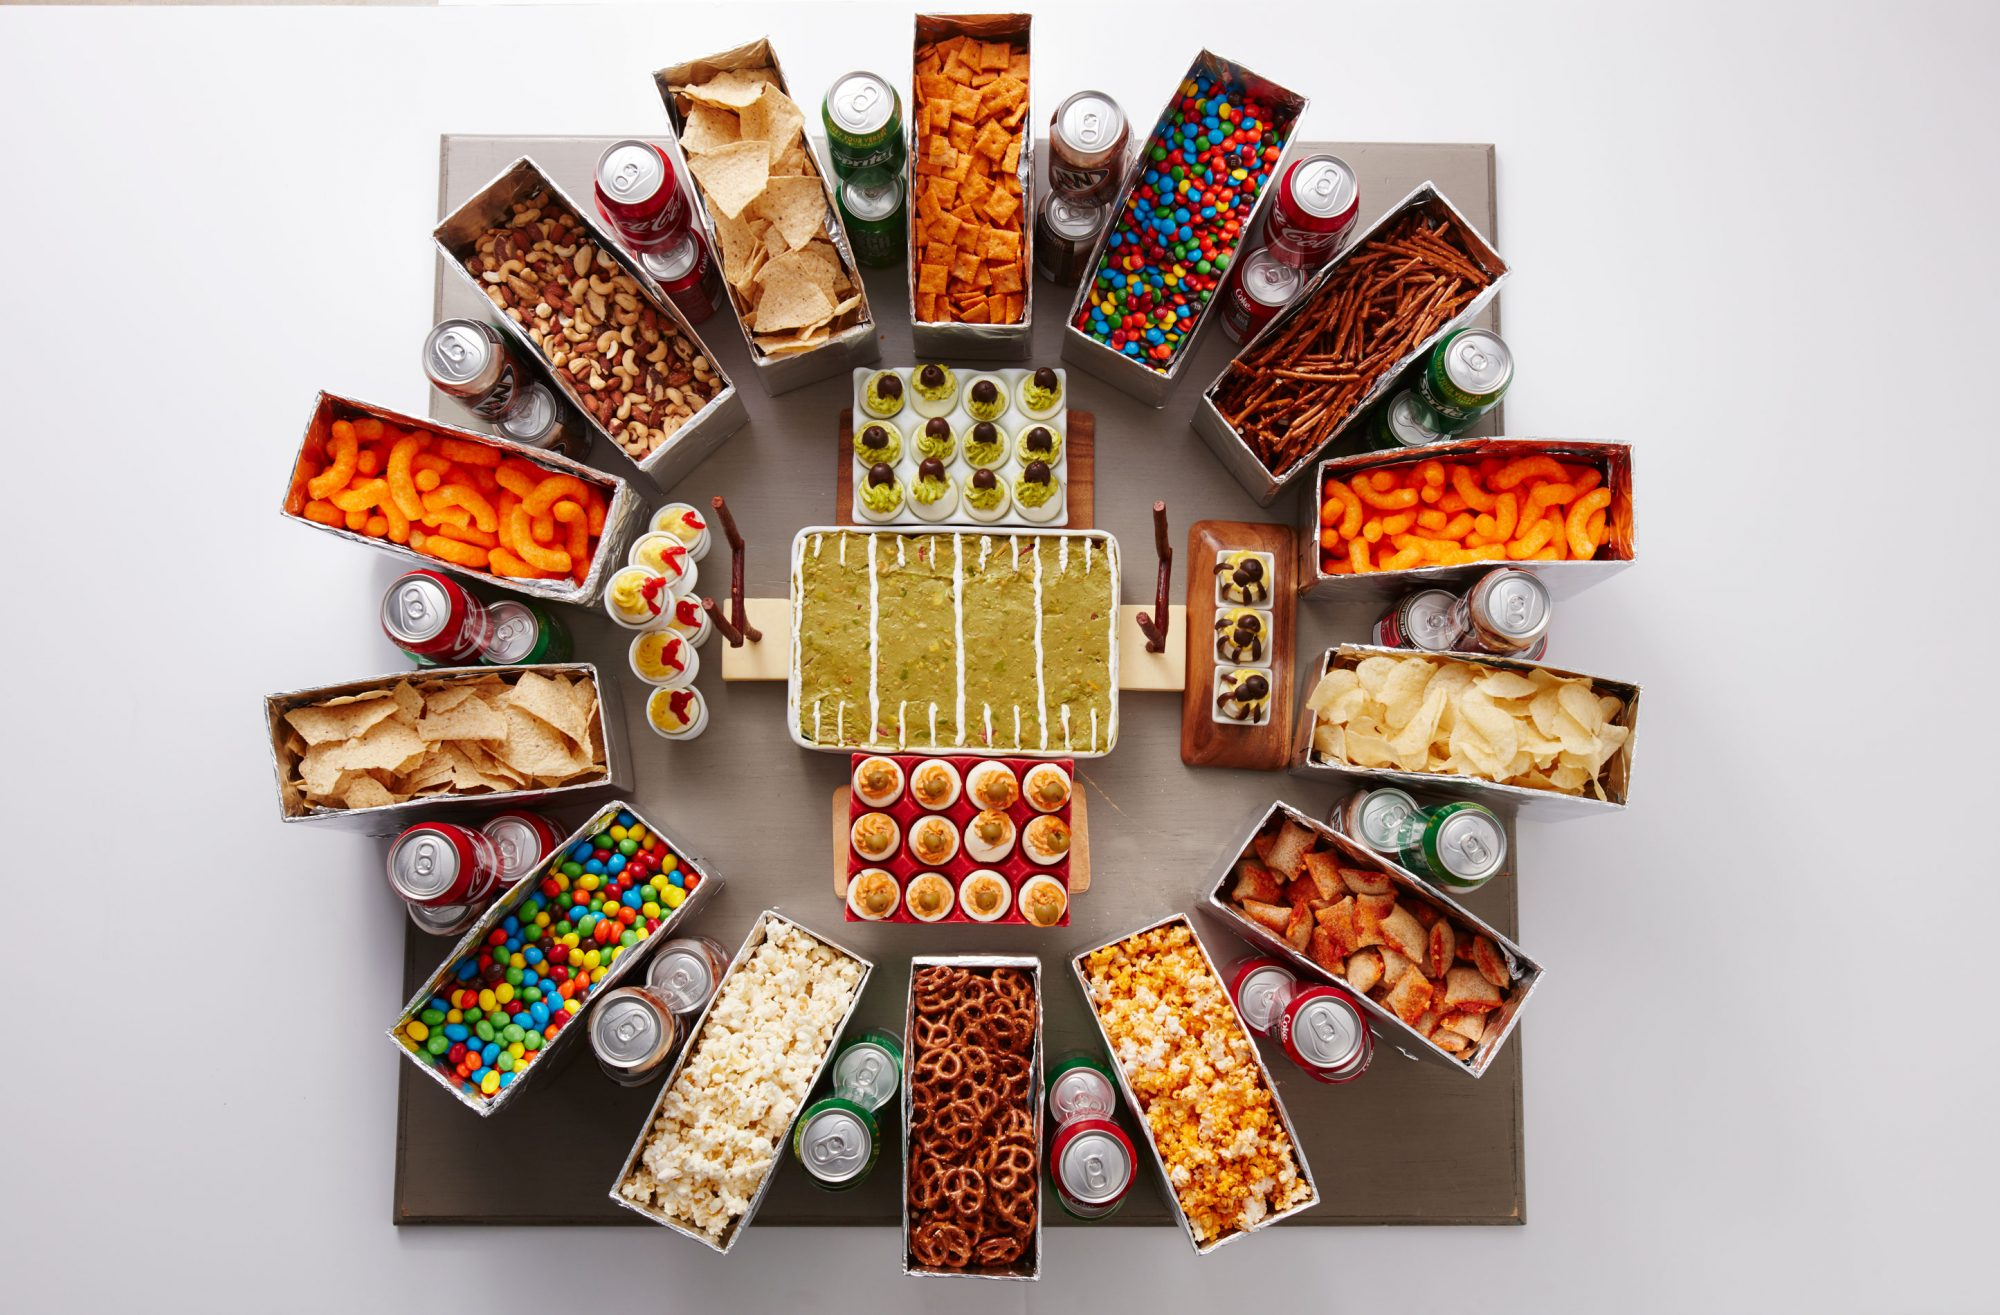 The Ultimate Edible Stadium